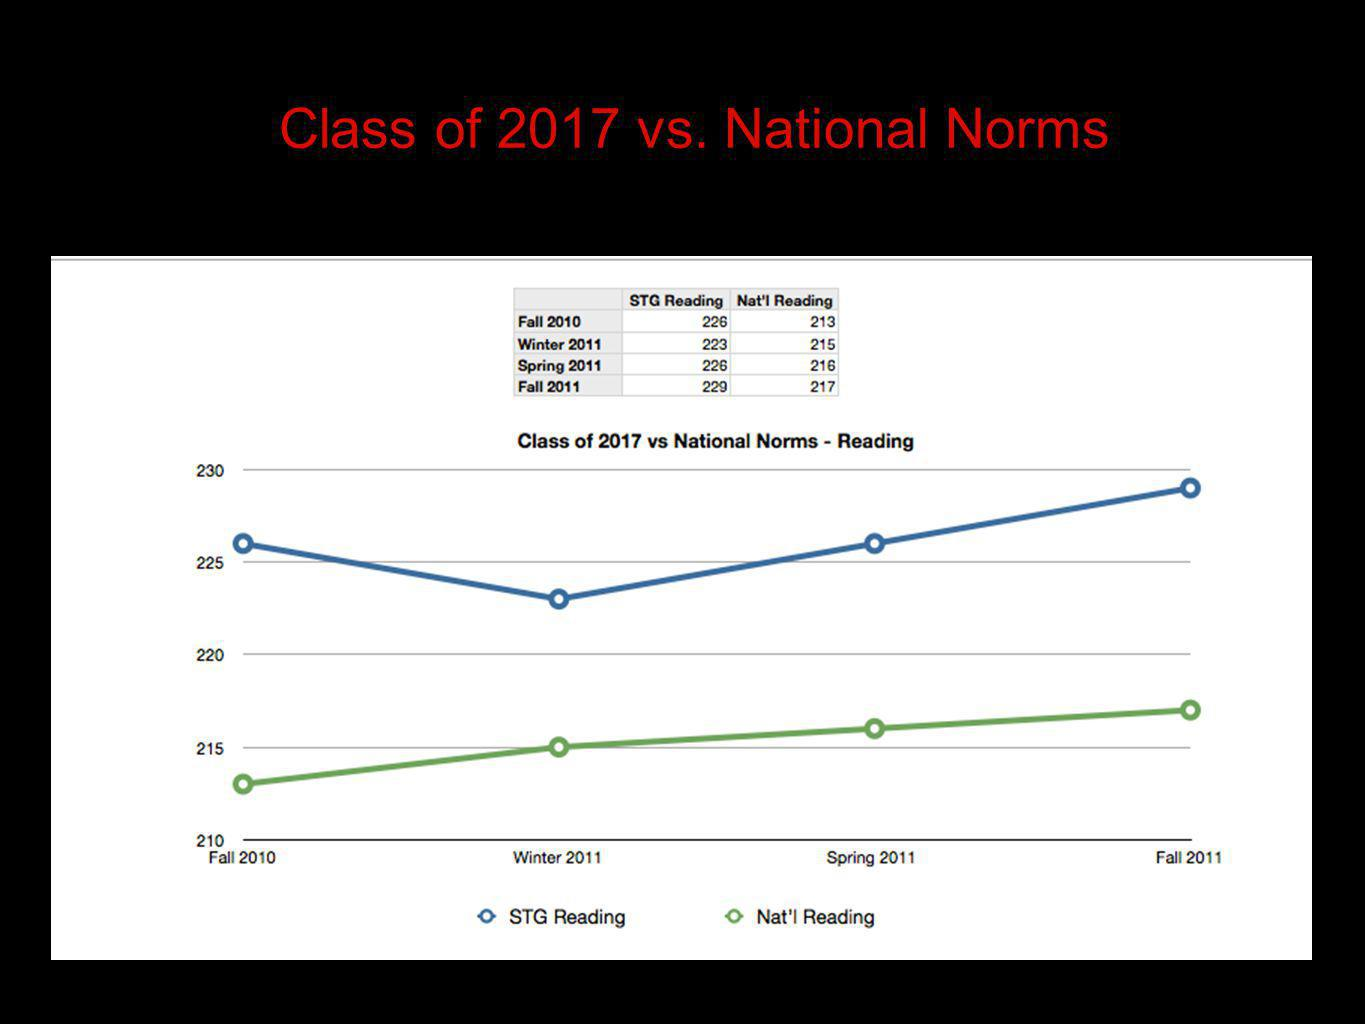 Class of 2017 vs. National Norms